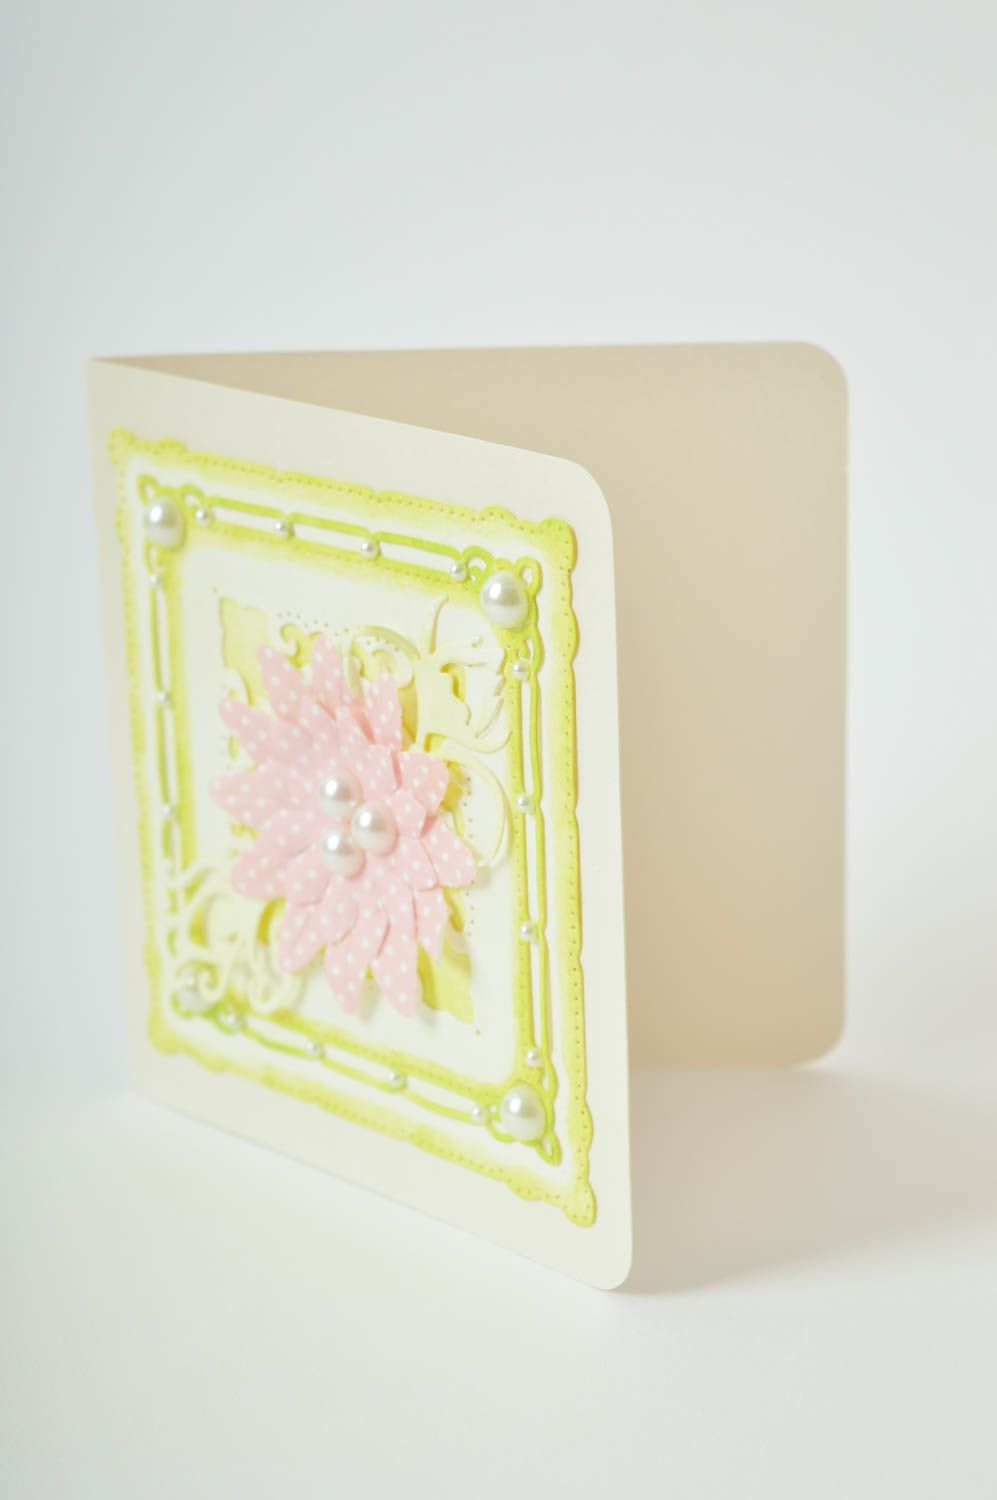 Homemade greeting card paper greeting card souvenir ideas unique gifts photo 4